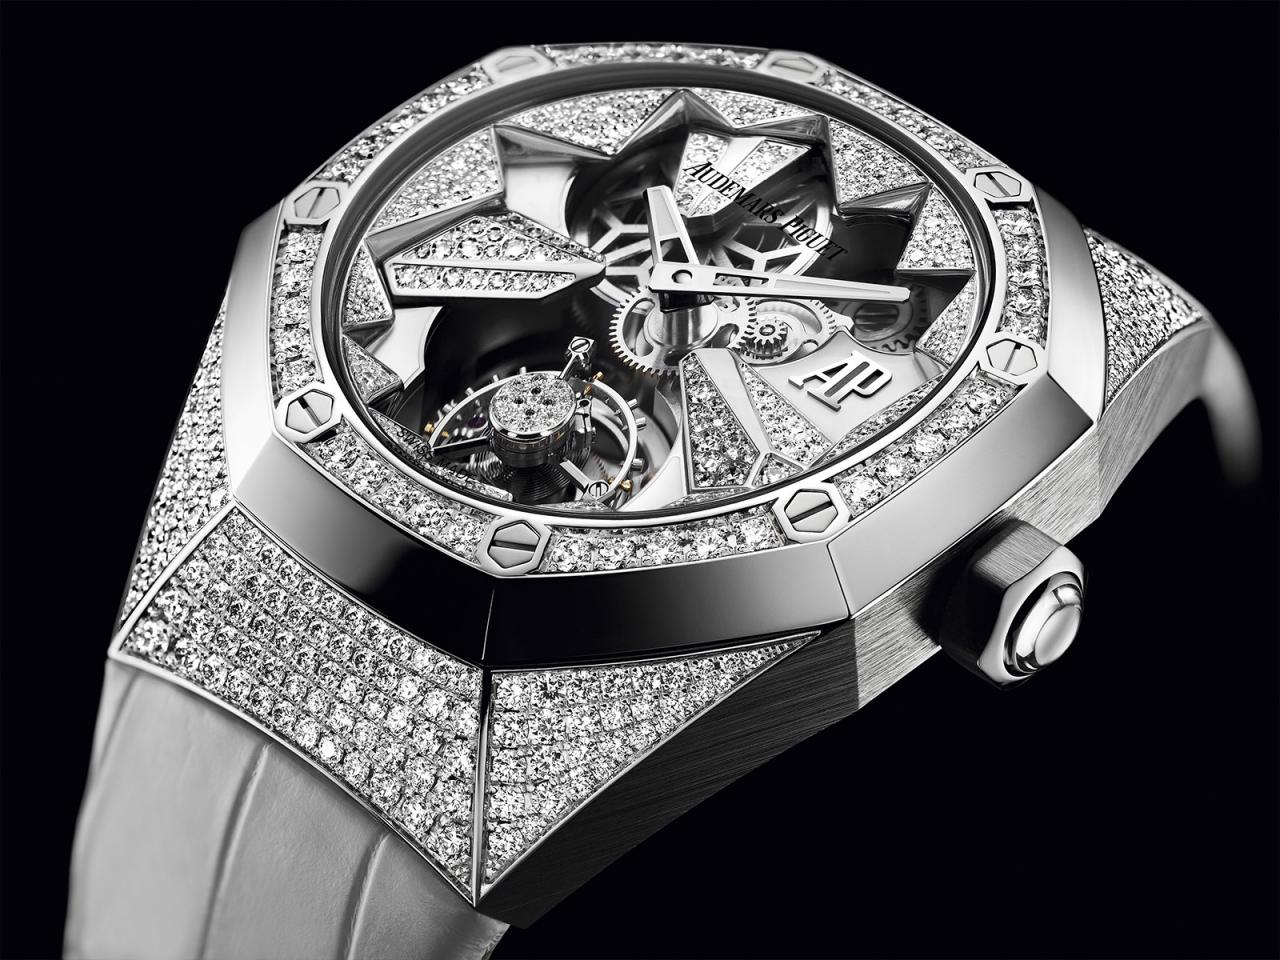 Royal Oak Concept Tourbillon Volante ROC_26227BC-ZZ-D011CR-01